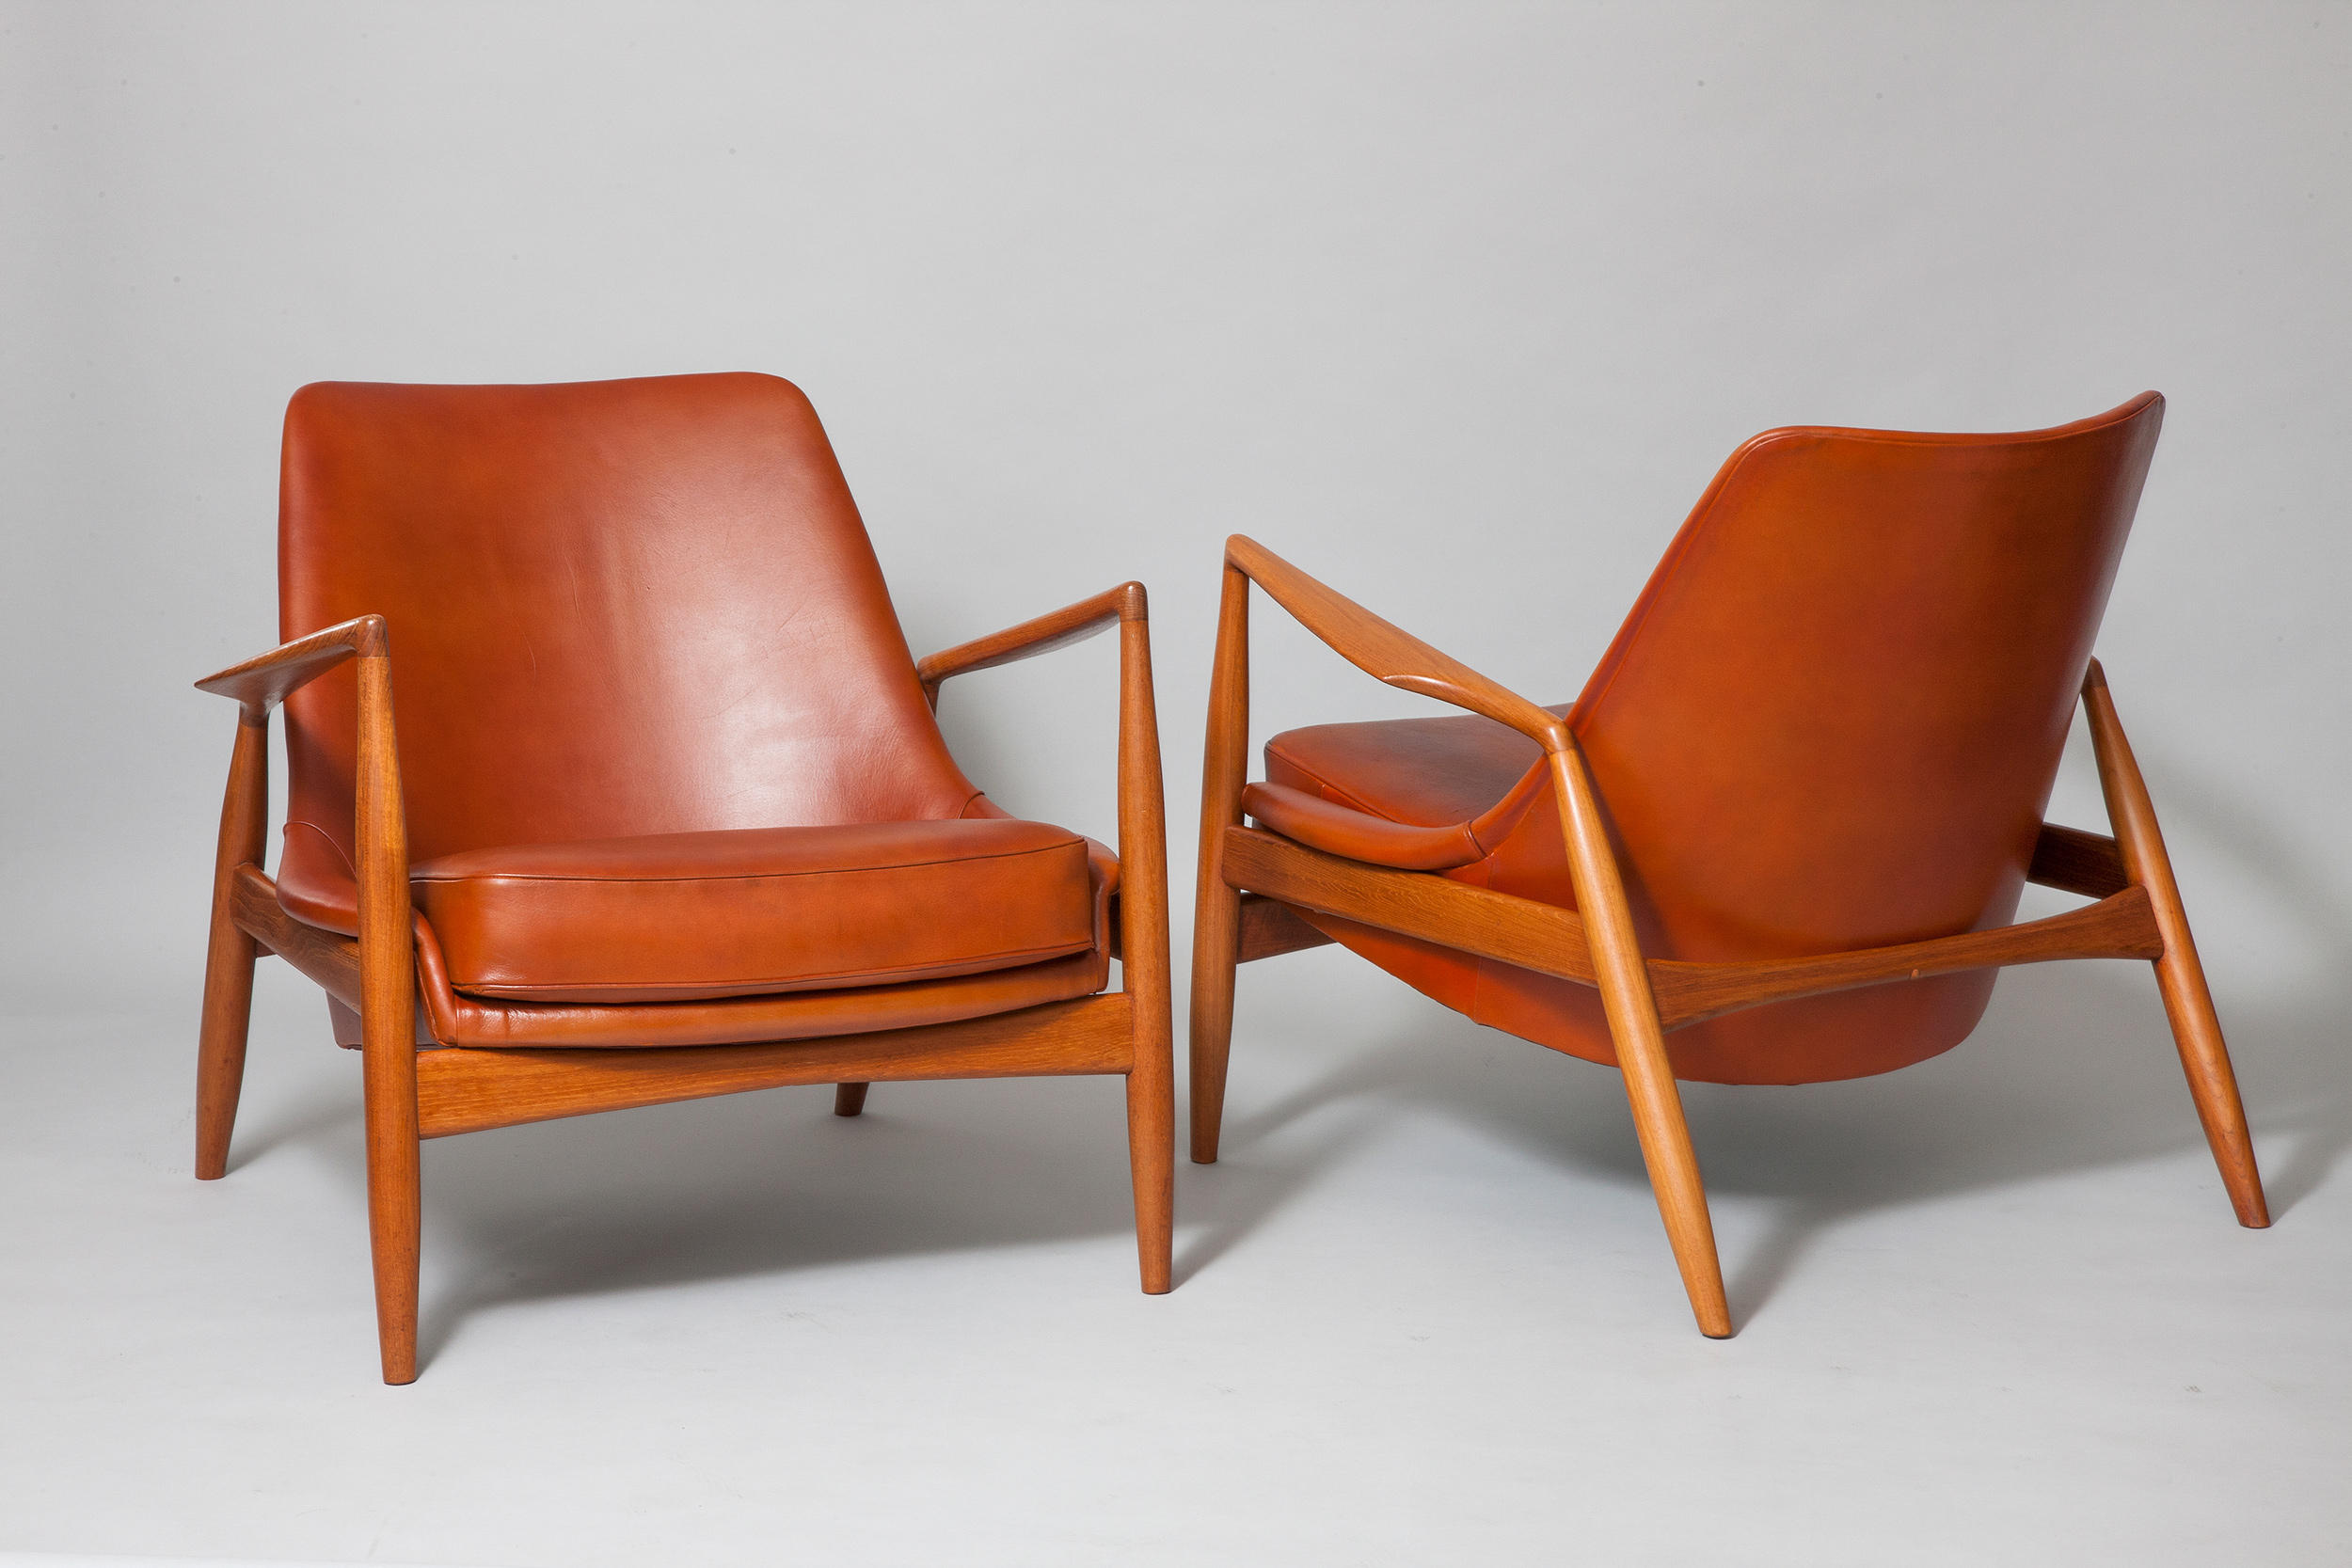 IB Kofod Larsen, pair of chairs, teak and original leather, 1955